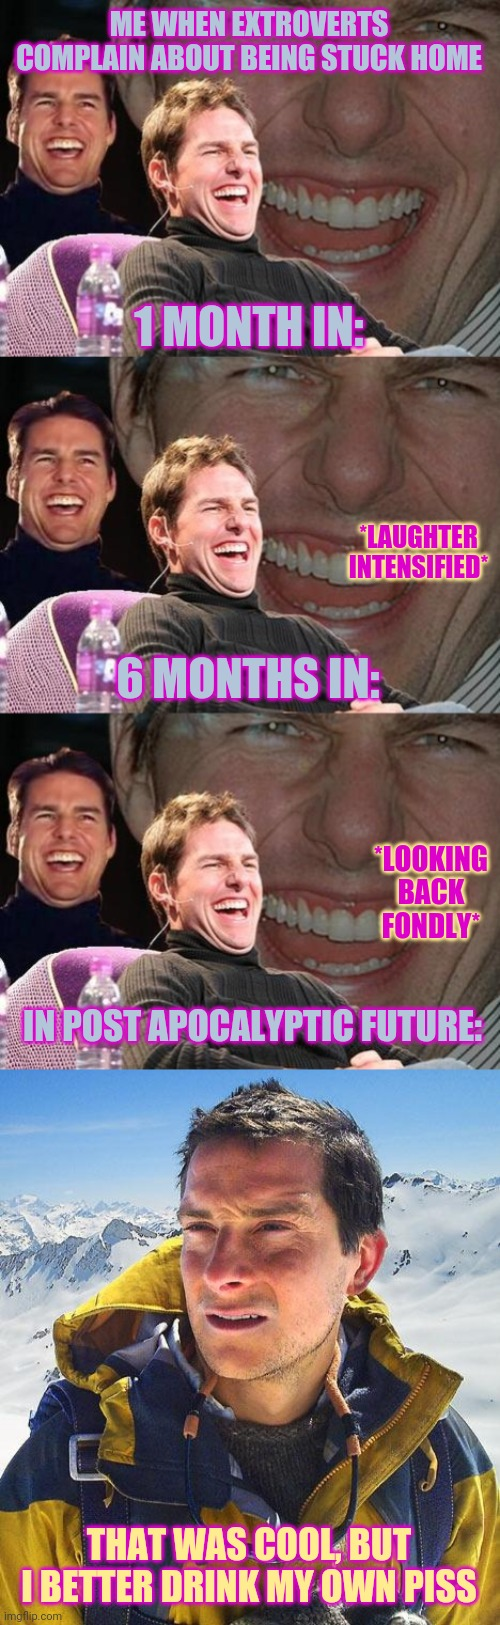 ME WHEN EXTROVERTS COMPLAIN ABOUT BEING STUCK HOME; 1 MONTH IN:; *LAUGHTER INTENSIFIED*; 6 MONTHS IN:; *LOOKING BACK FONDLY*; IN POST APOCALYPTIC FUTURE:; THAT WAS COOL, BUT I BETTER DRINK MY OWN PISS | image tagged in memes,bear grylls,tom cruise laugh | made w/ Imgflip meme maker